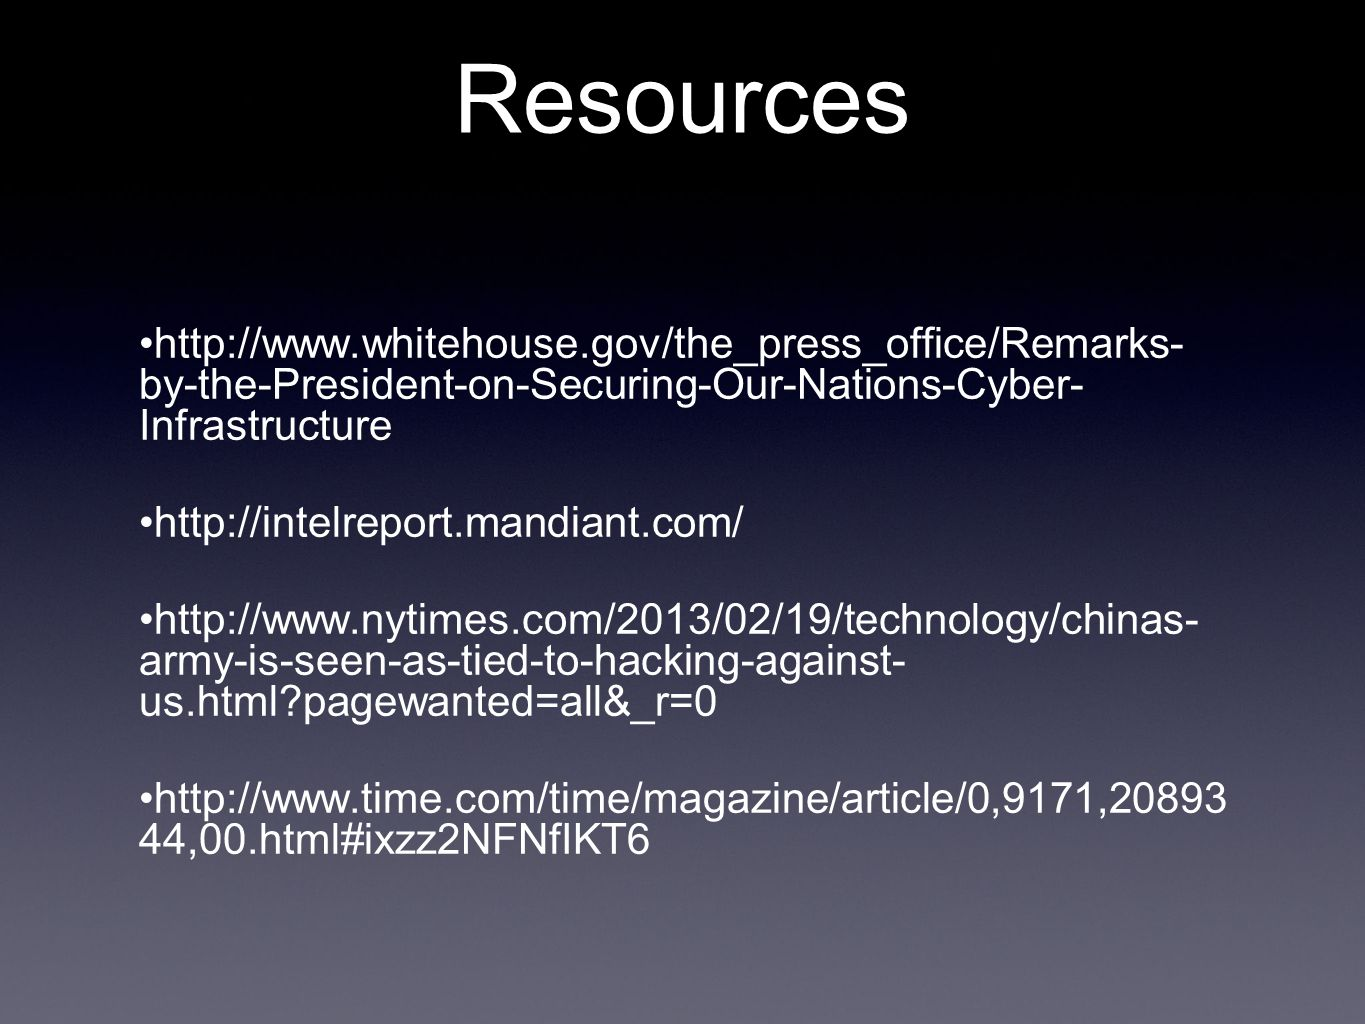 Resources http://www.whitehouse.gov/the_press_office/Remarks- by-the-President-on-Securing-Our-Nations-Cyber- Infrastructure http://intelreport.mandiant.com/ http://www.nytimes.com/2013/02/19/technology/chinas- army-is-seen-as-tied-to-hacking-against- us.html?pagewanted=all&_r=0 http://www.time.com/time/magazine/article/0,9171,20893 44,00.html#ixzz2NFNfIKT6